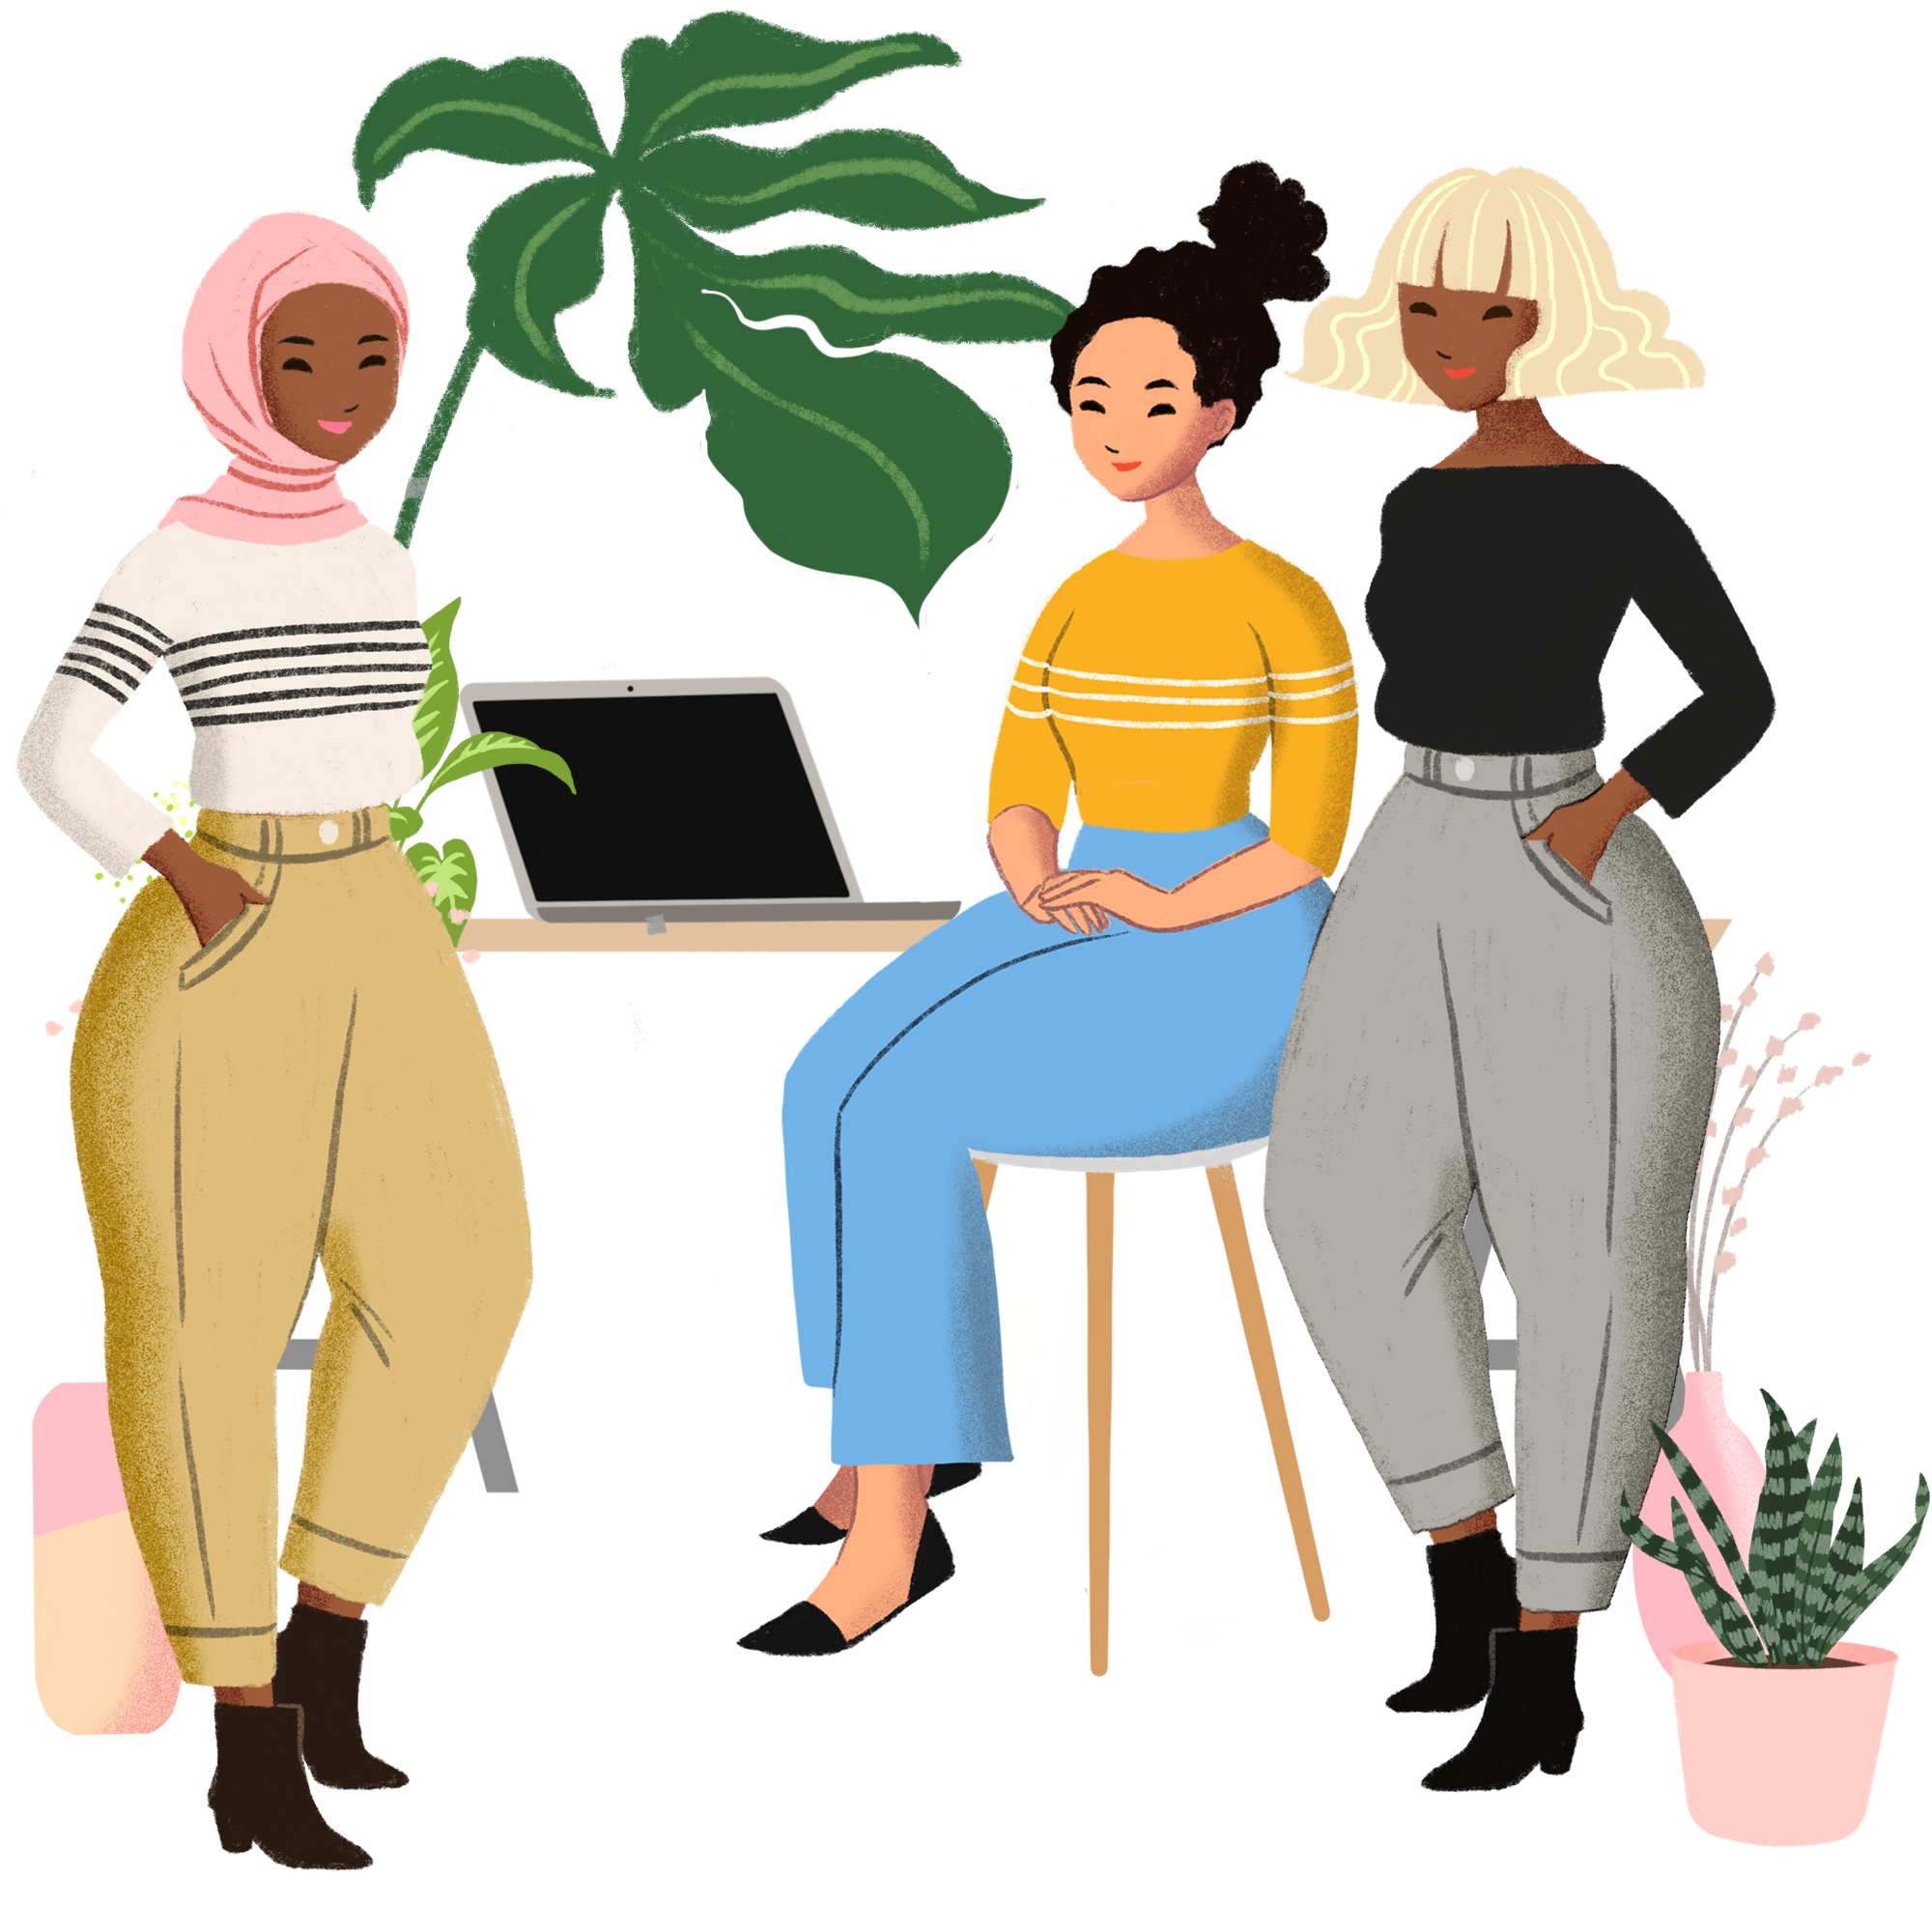 Illustration of 3 women of various races sitting at a table with a laptop   Woman investors New Orleans, LA deMauriac Financial Consulting & Wealth Management